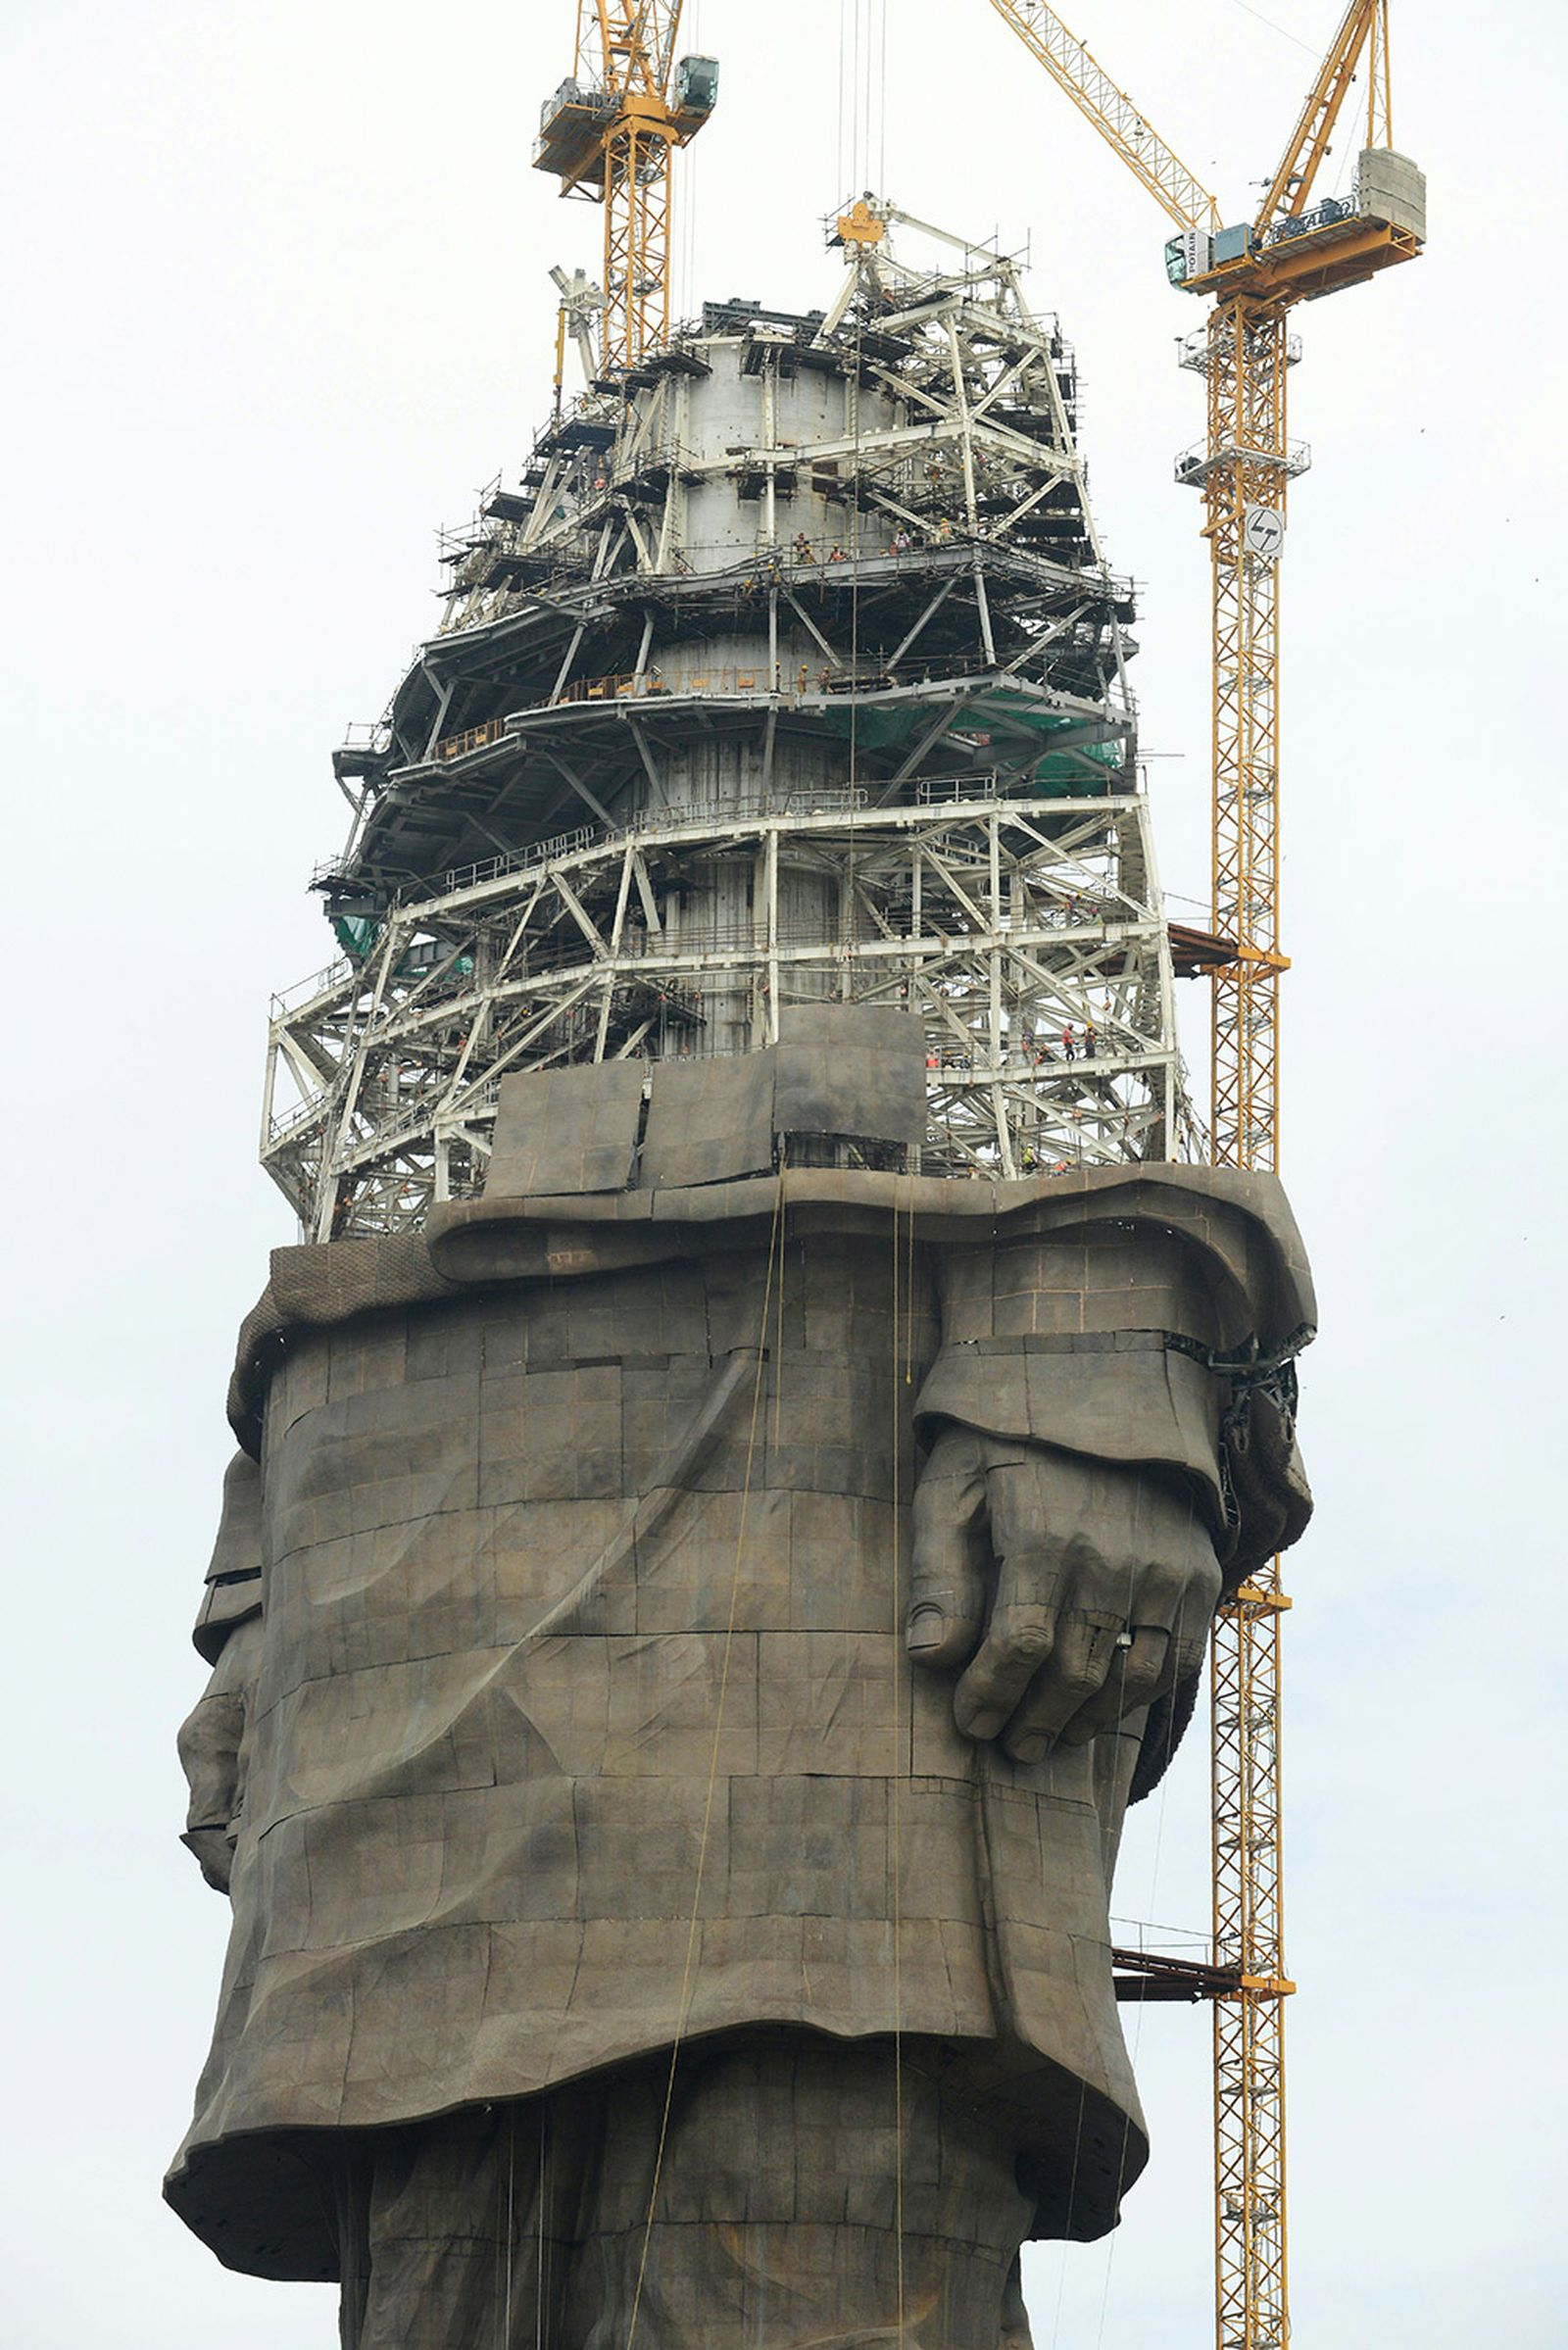 india statue of unity worlds tallest statue